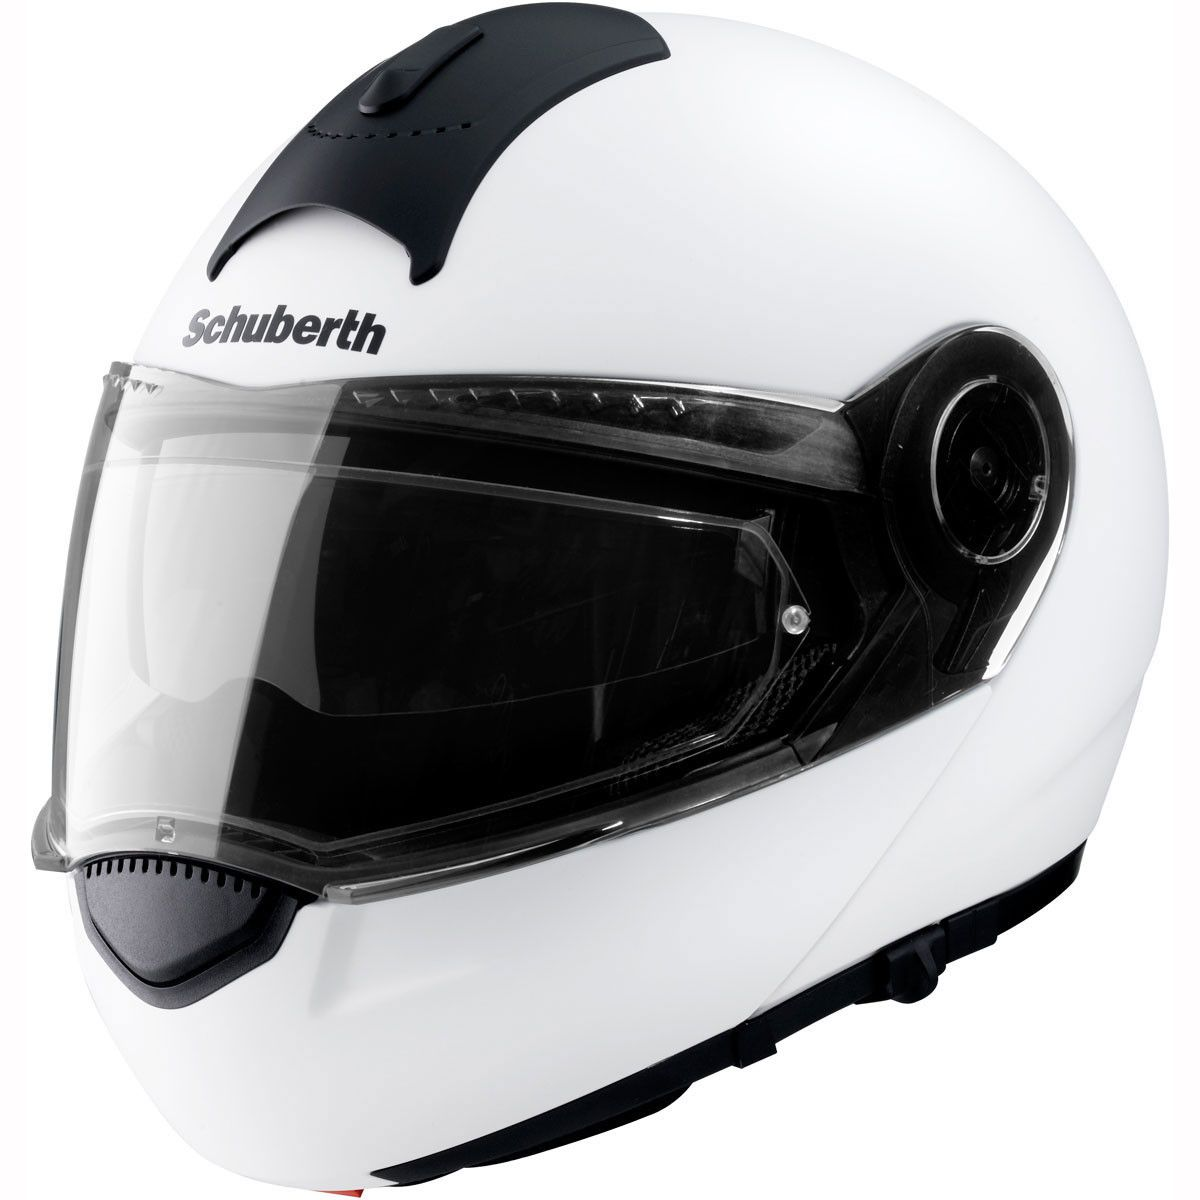 Schuberth C3 Helmet In White This Motorcycle Helmet Is One Of The Lightest Flip Front And The White Motorcycle Helmet Motorcycle Helmets Futuristic Helmet